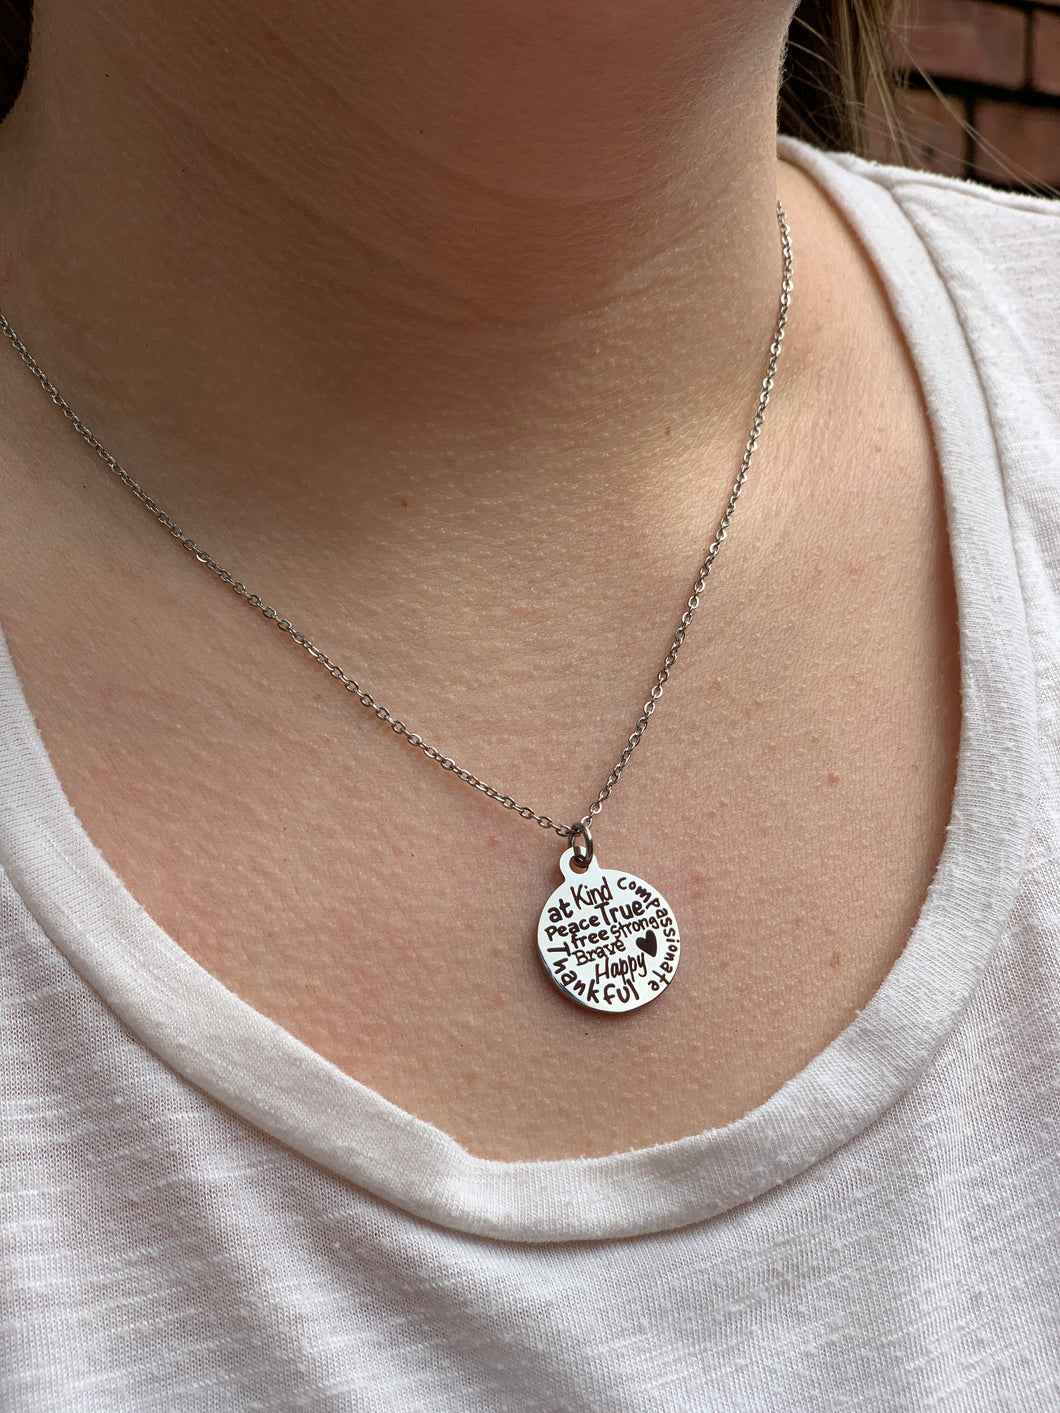 Kindness Charm Necklace